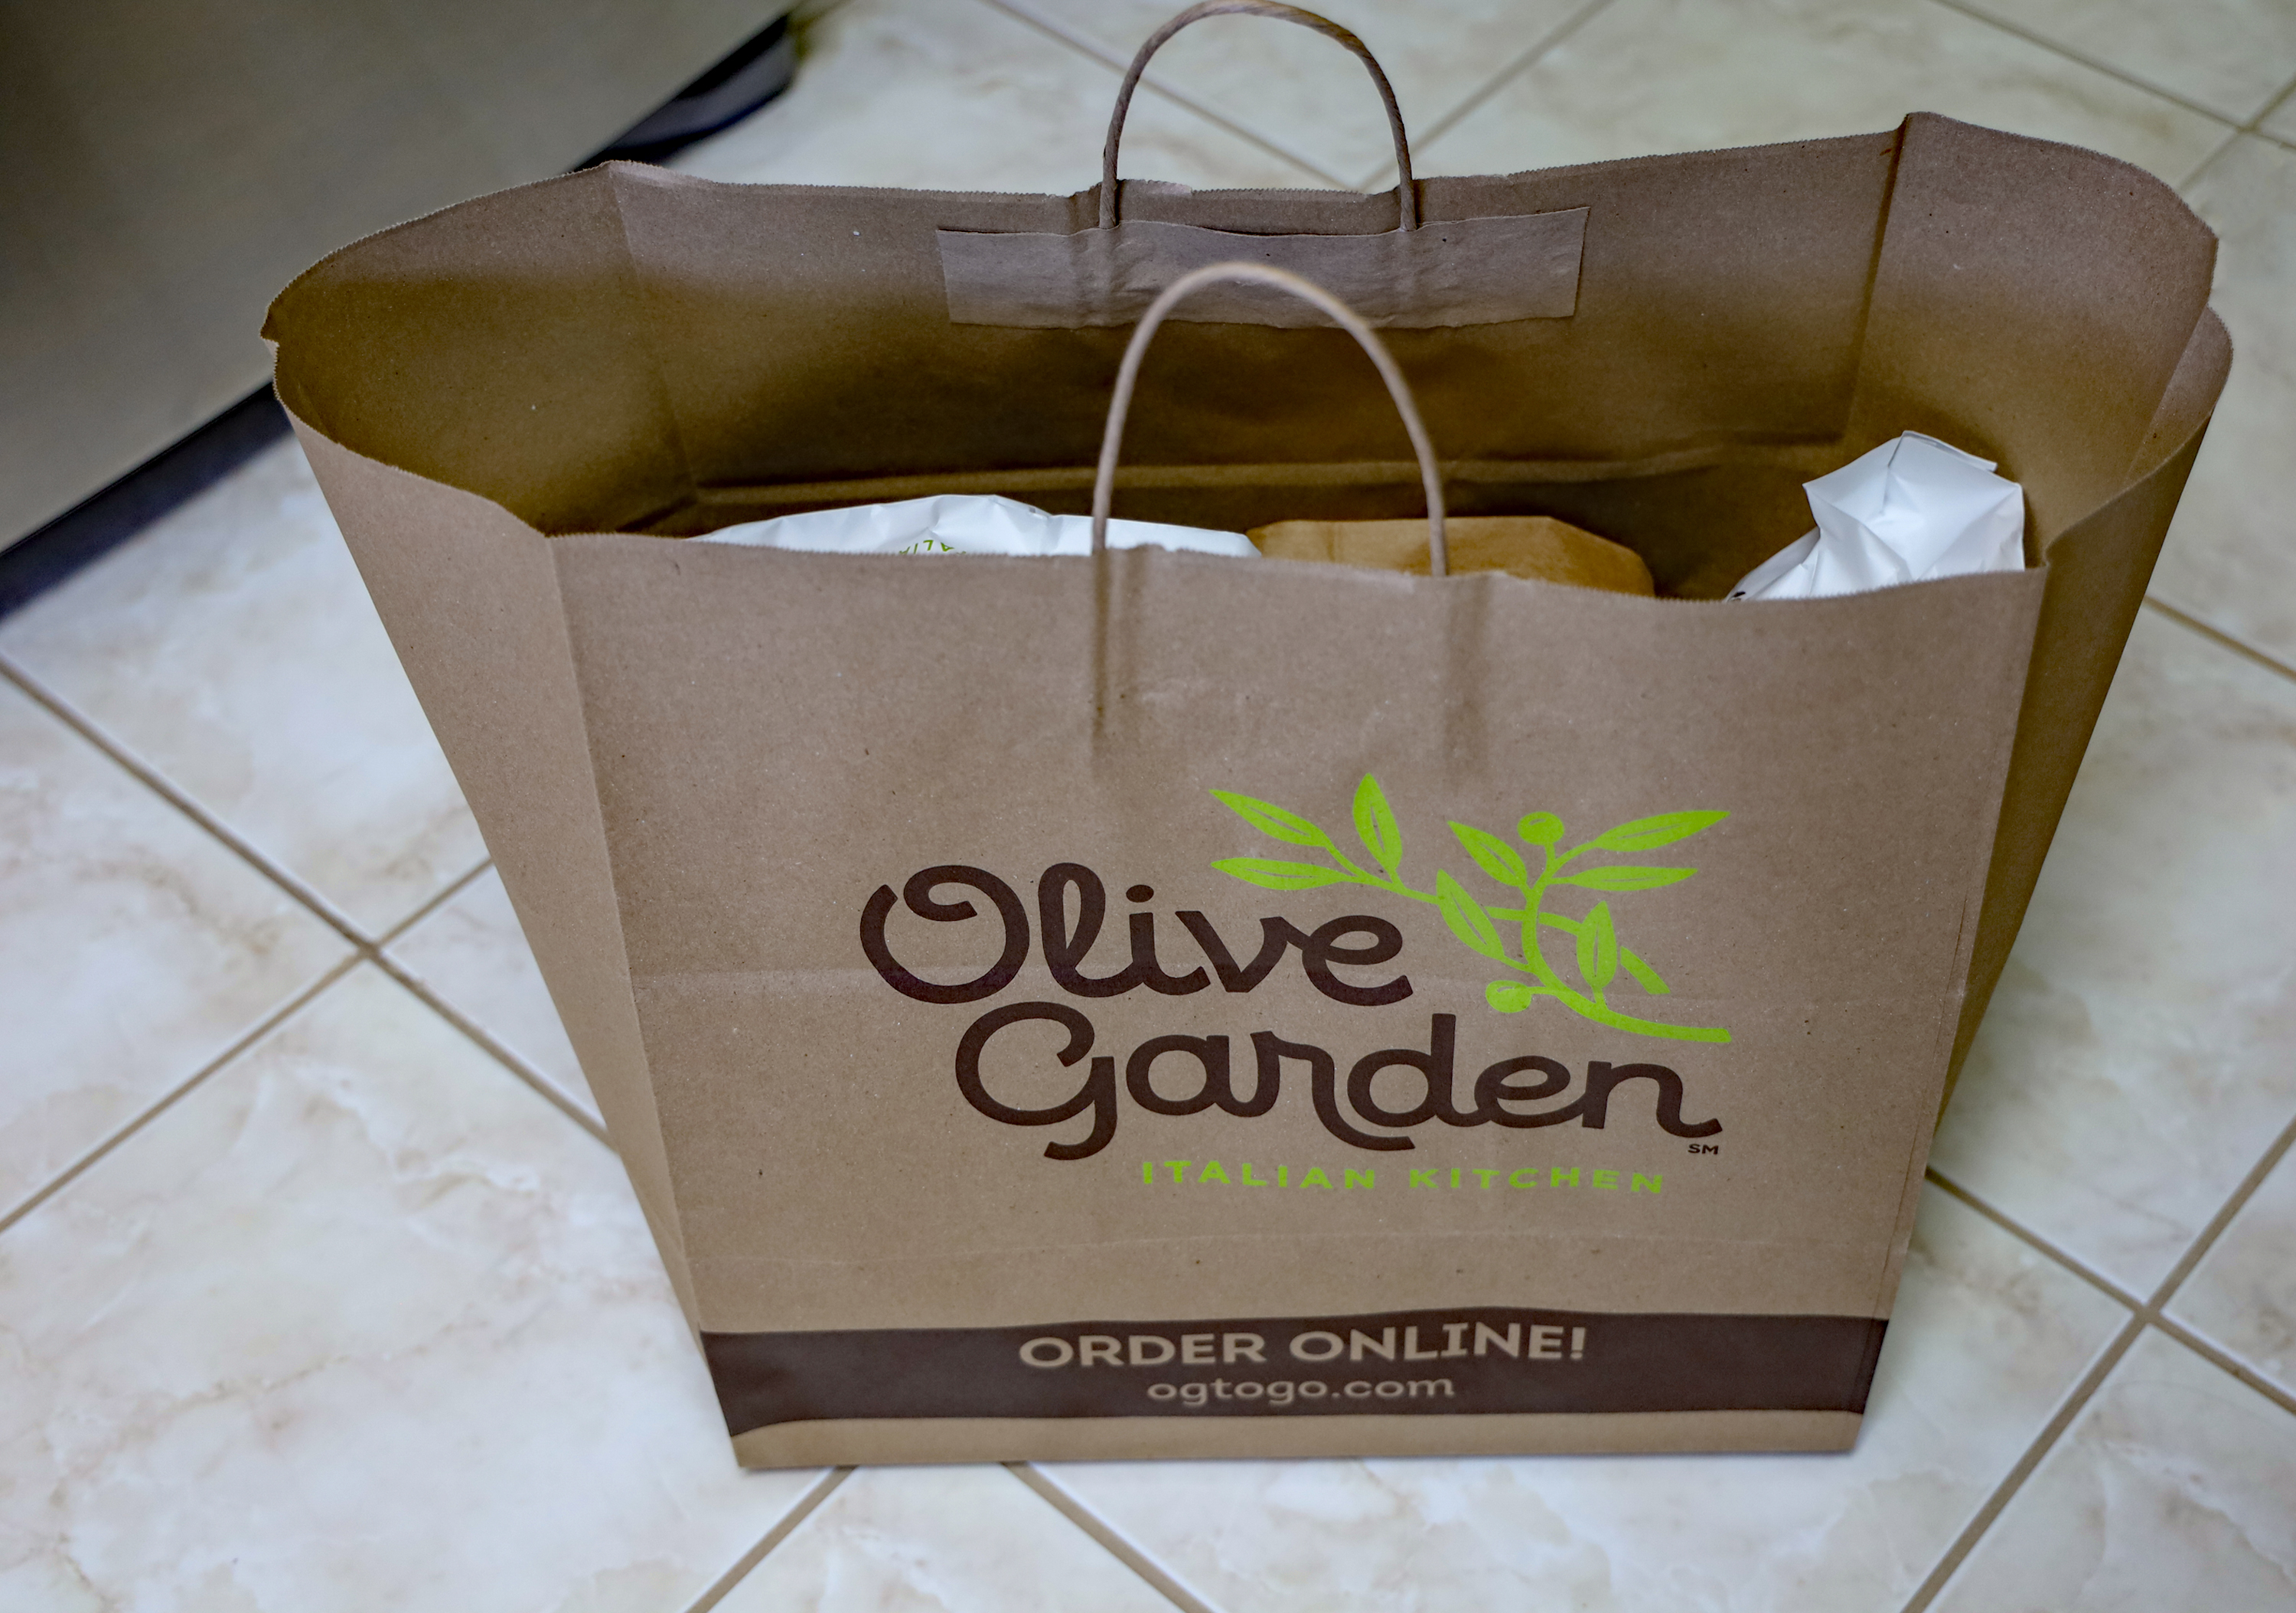 food service market research olive garden to go